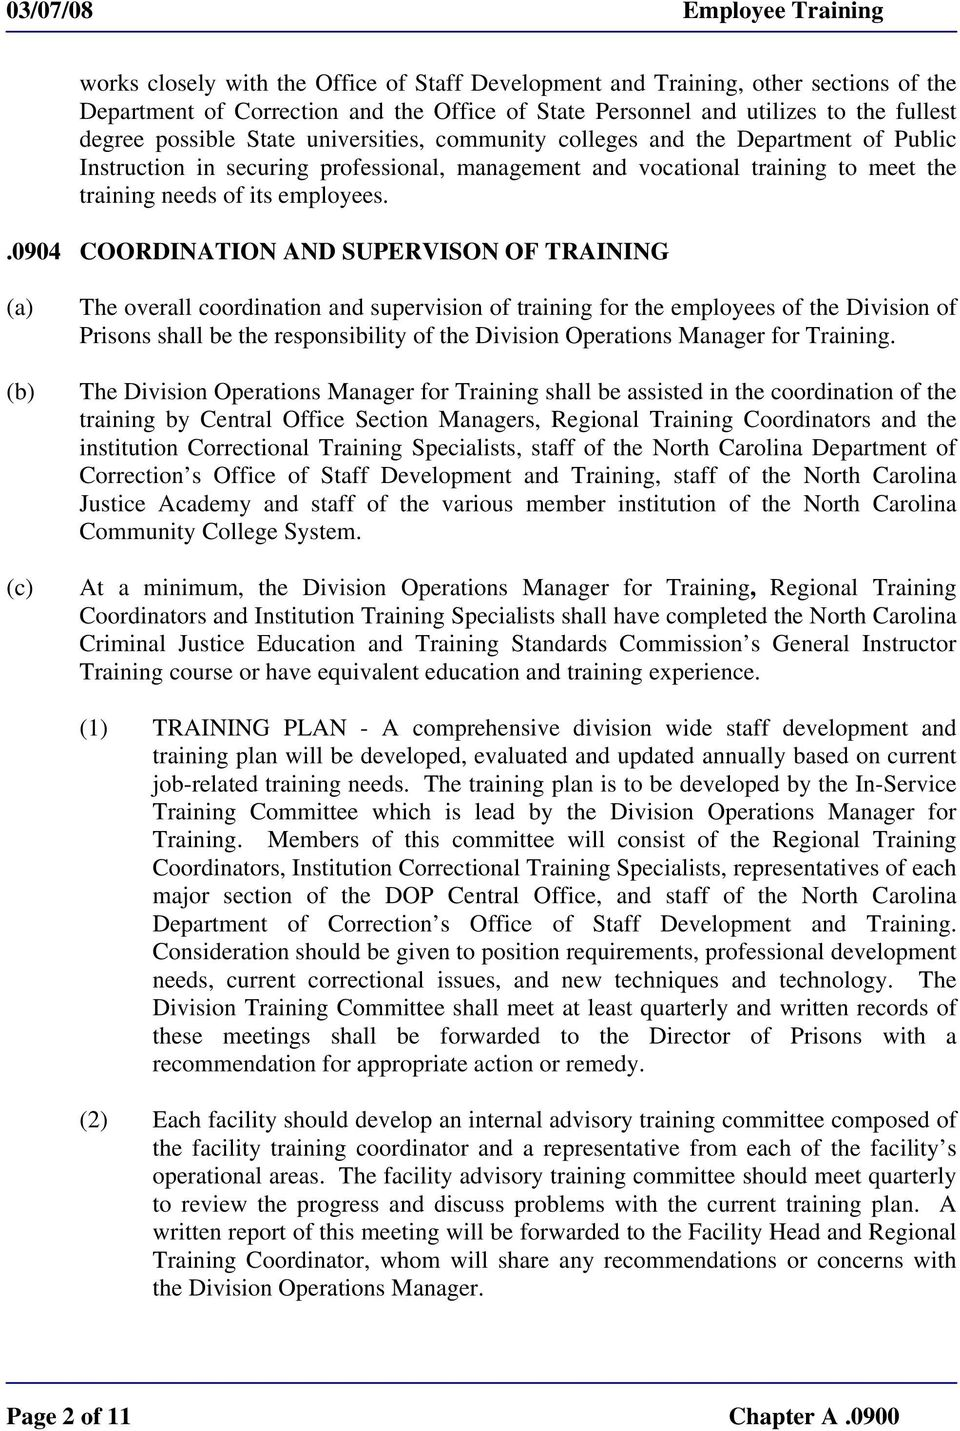 .0904 COORDINATION AND SUPERVISON OF TRAINING (a) (b) (c) The overall coordination and supervision of training for the employees of the Division of Prisons shall be the responsibility of the Division